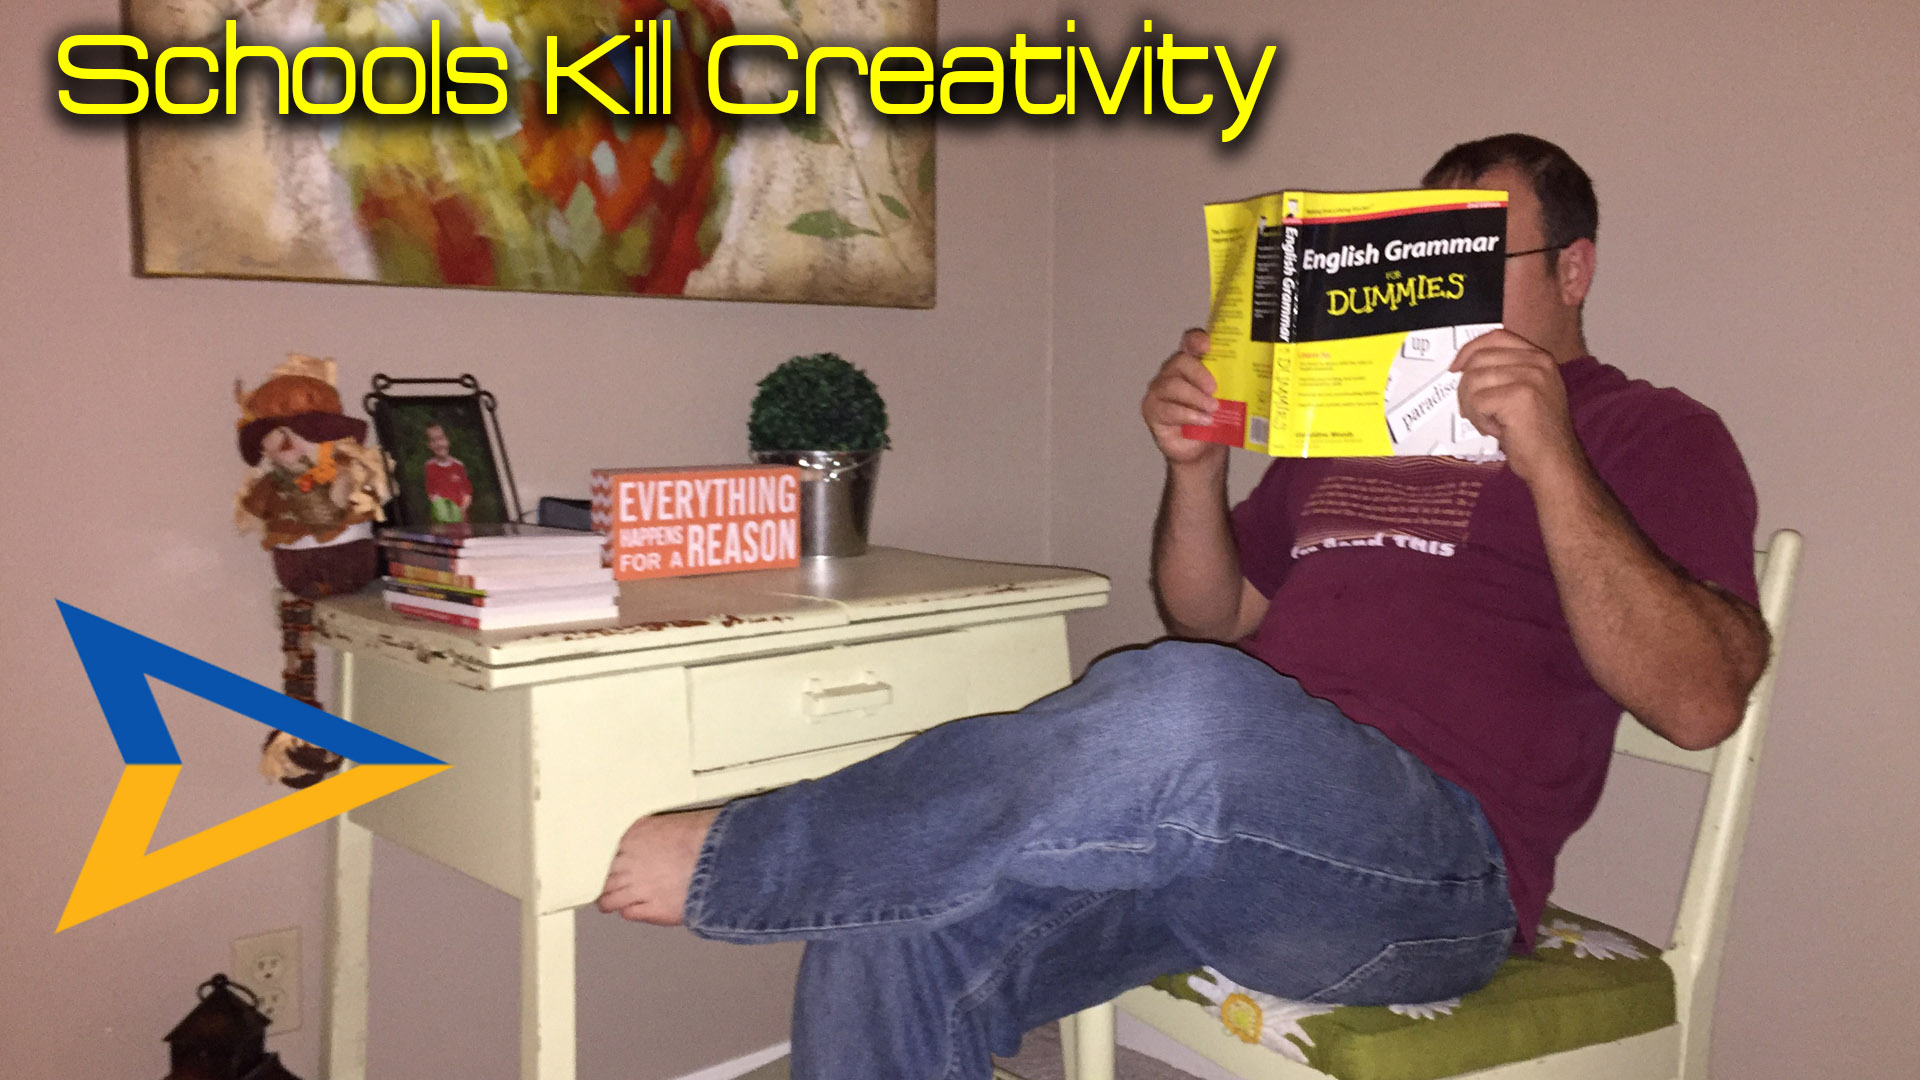 Schools Kill Creativity – IYB2015020